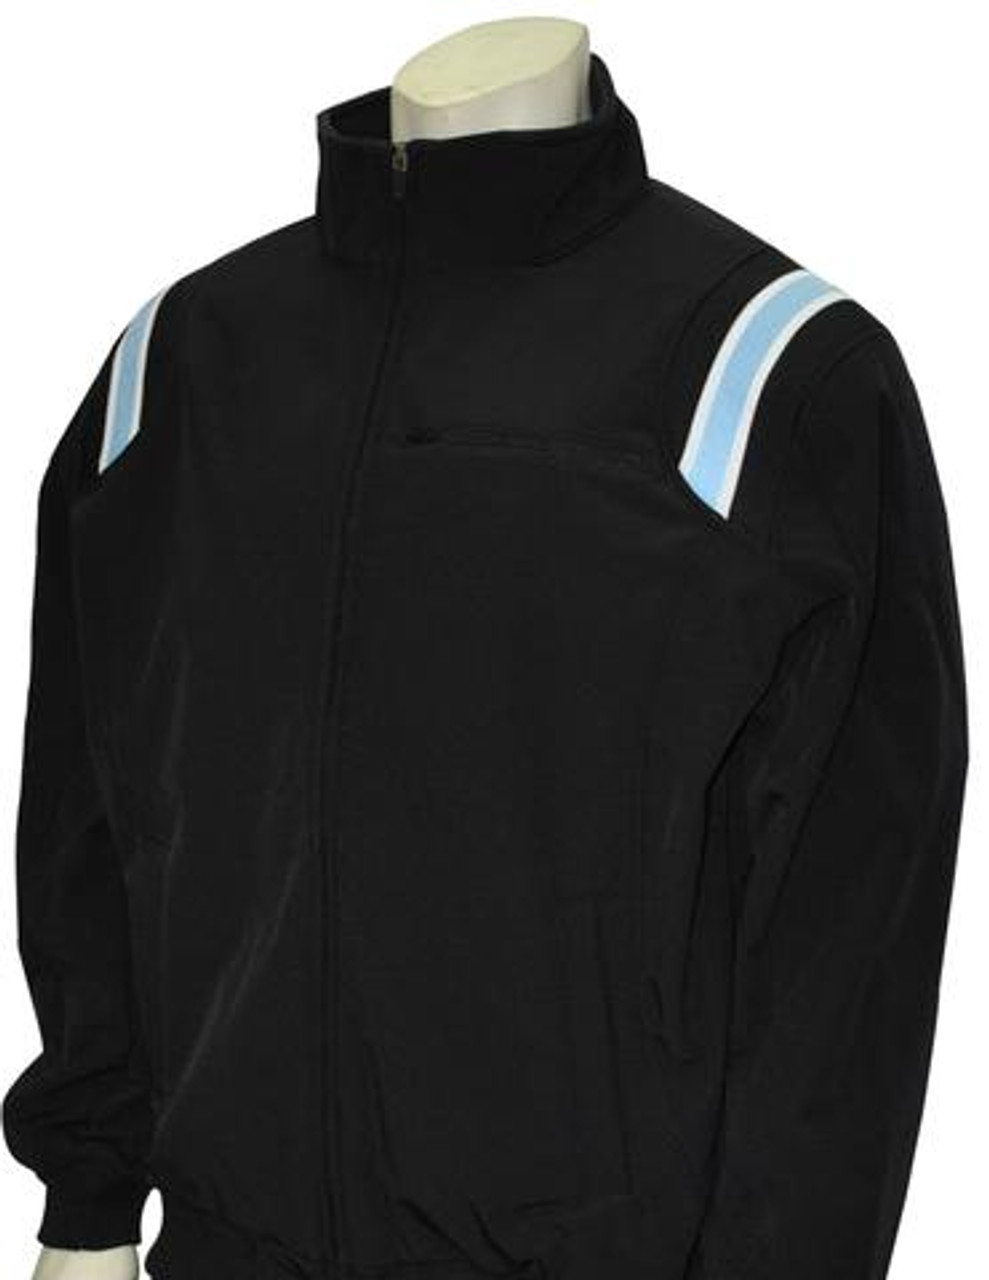 Black Therma Base Umpire Jacket with Columbia Blue and White Trim